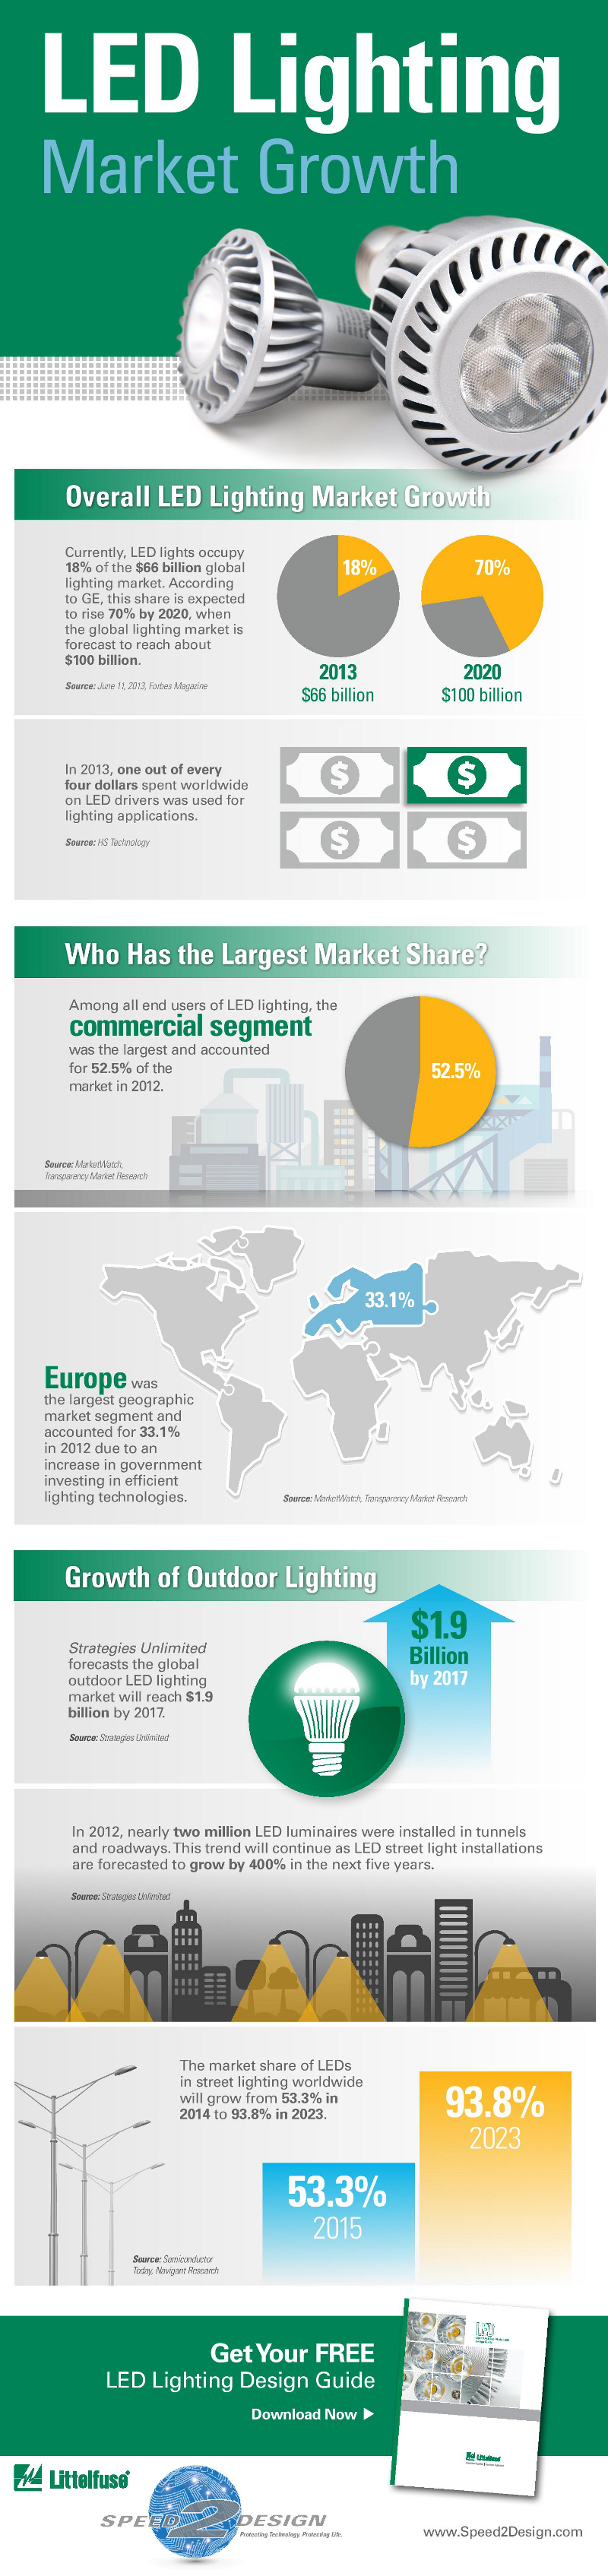 LED Marketing Facts